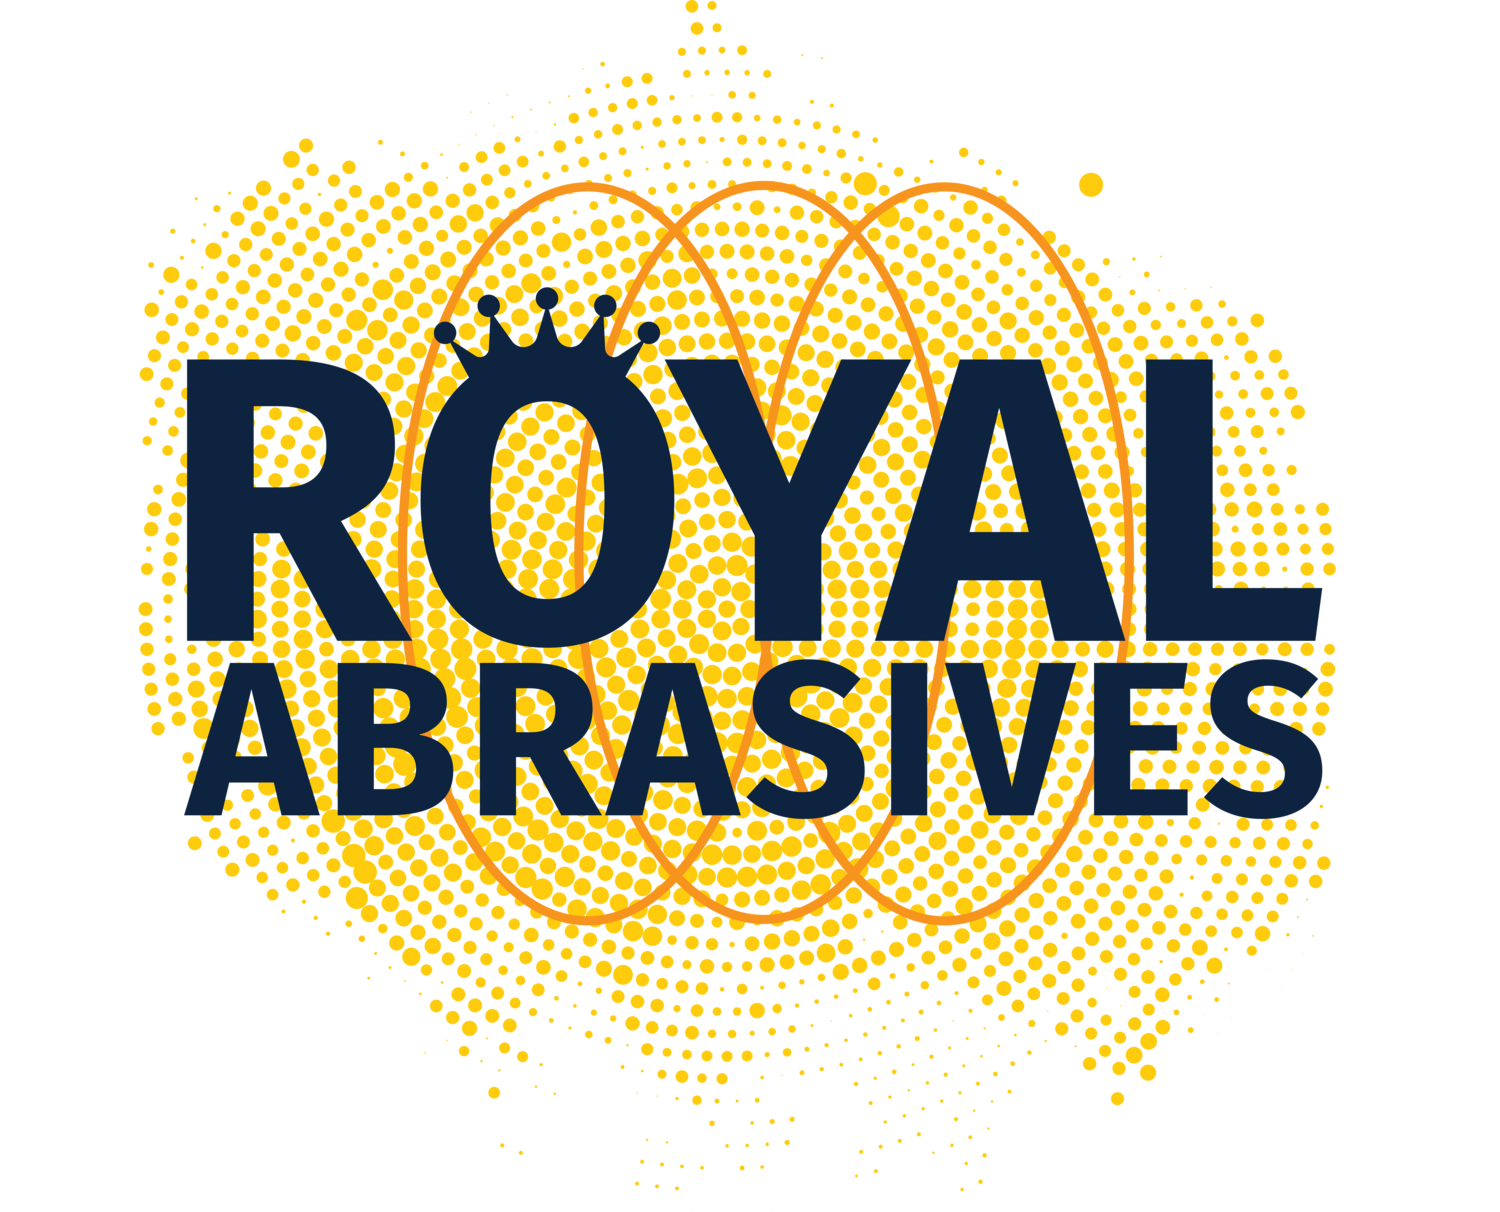 Royal Abrasives